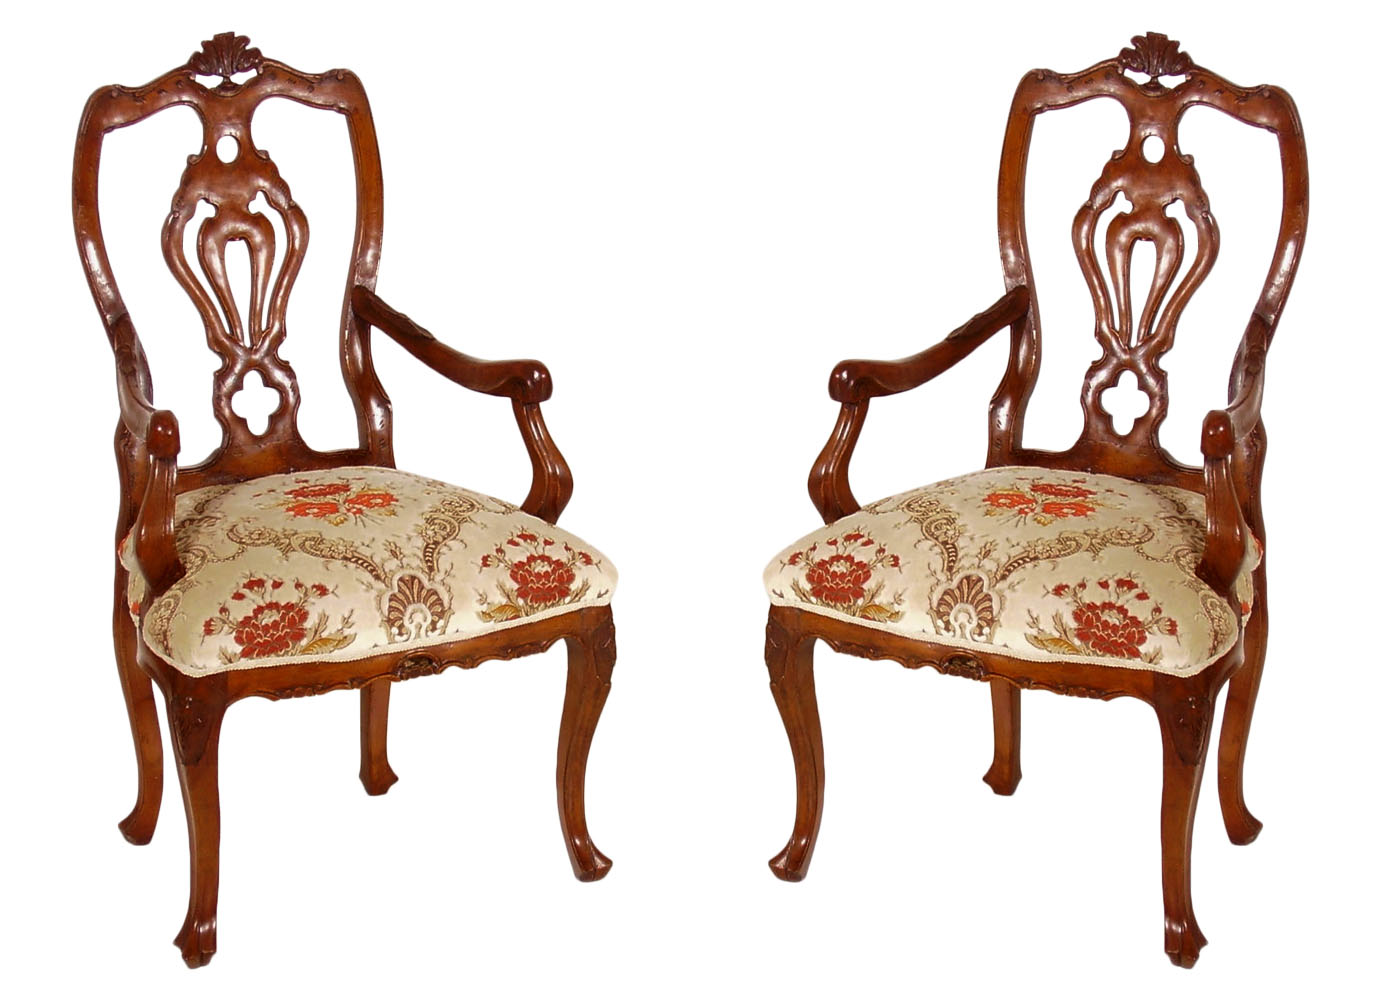 antique-pair-armchairs-venetian-baroque-MAH43-1